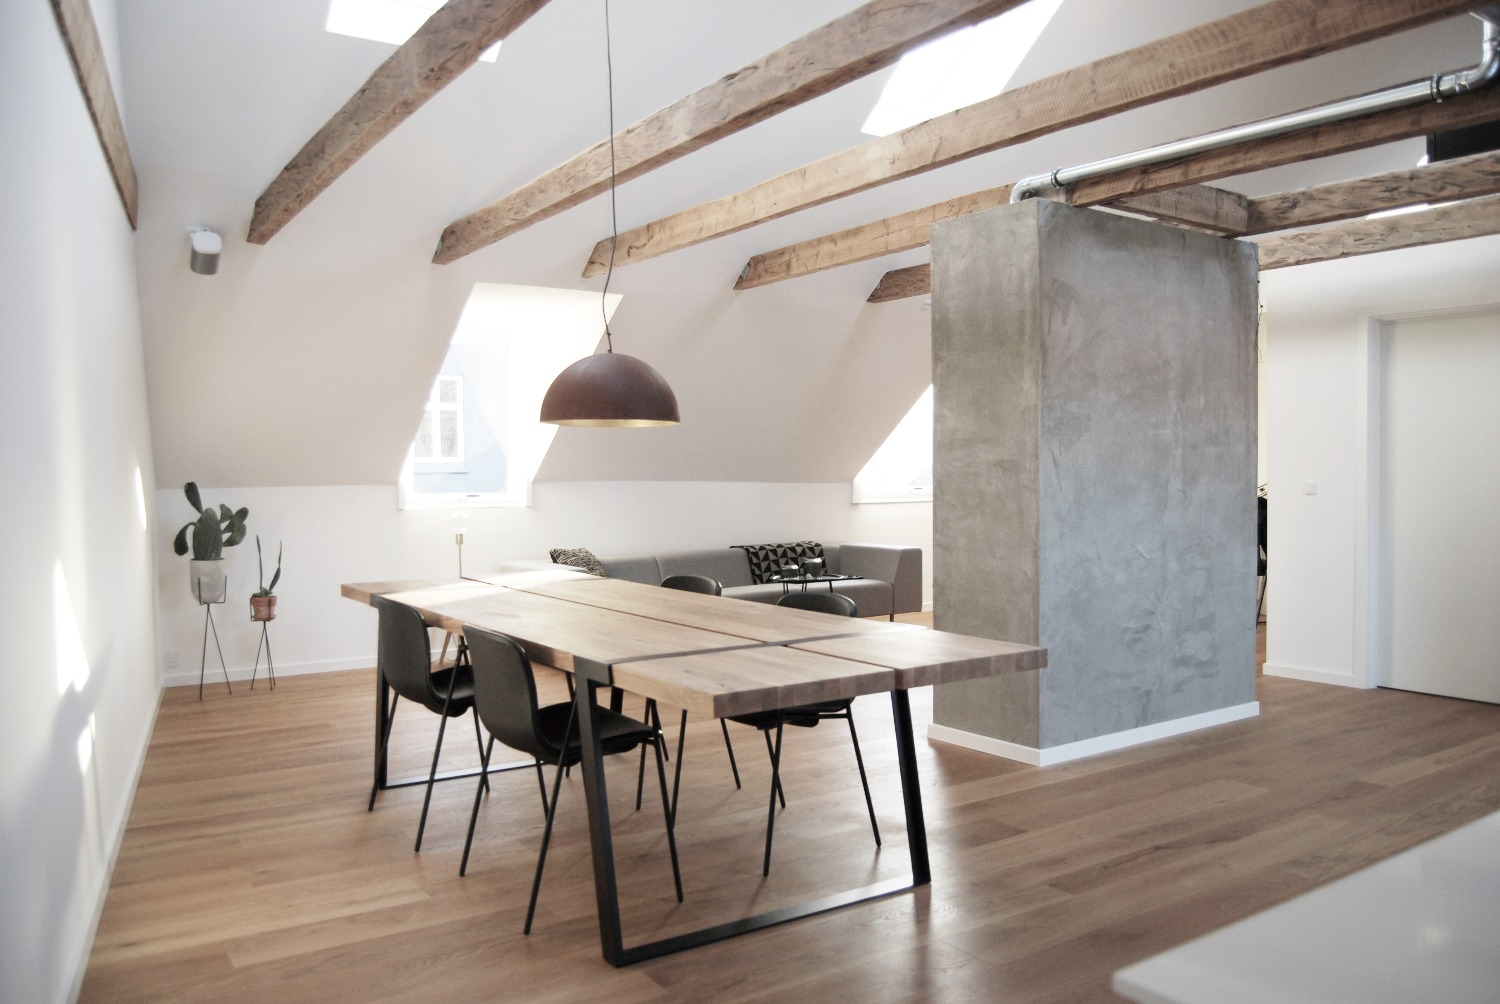 Wooden-ceiling-beams-and-concrete-wall-section-in-the-dining-area-of-the-apartment-43608